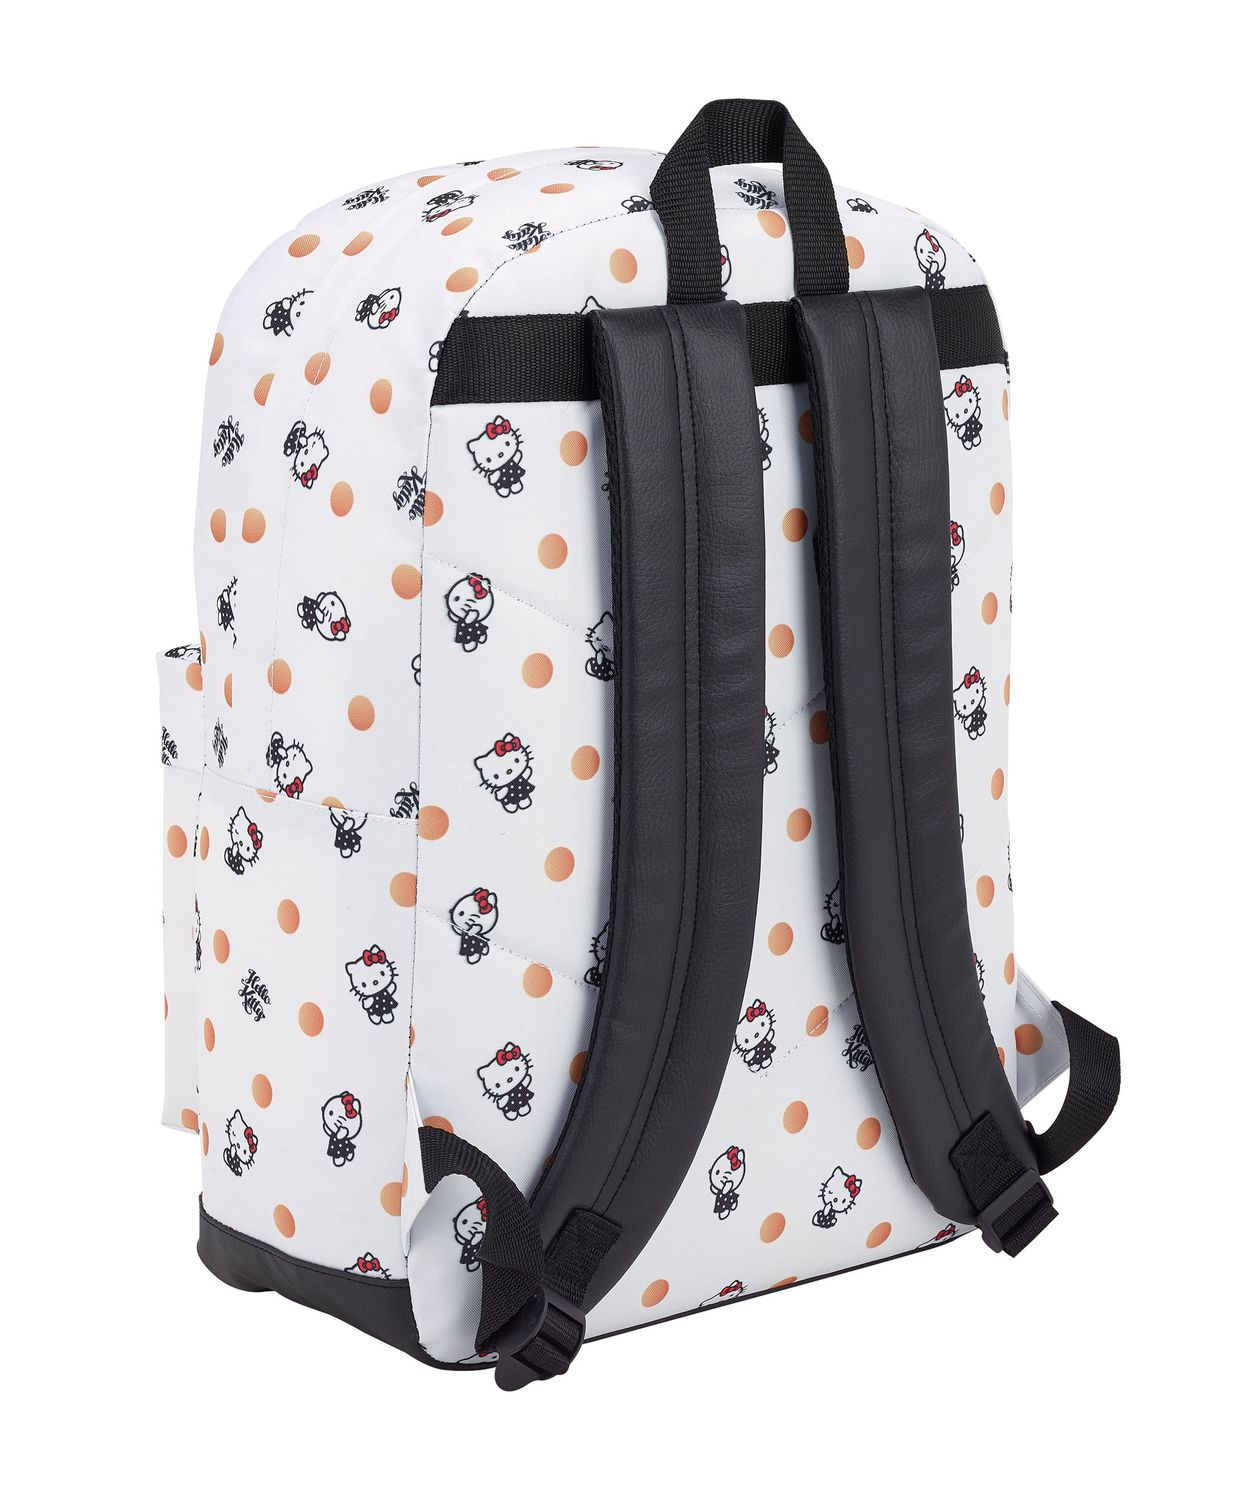 Hello Kitty Polka Dots Laptop Backpack 15.6' – image 2